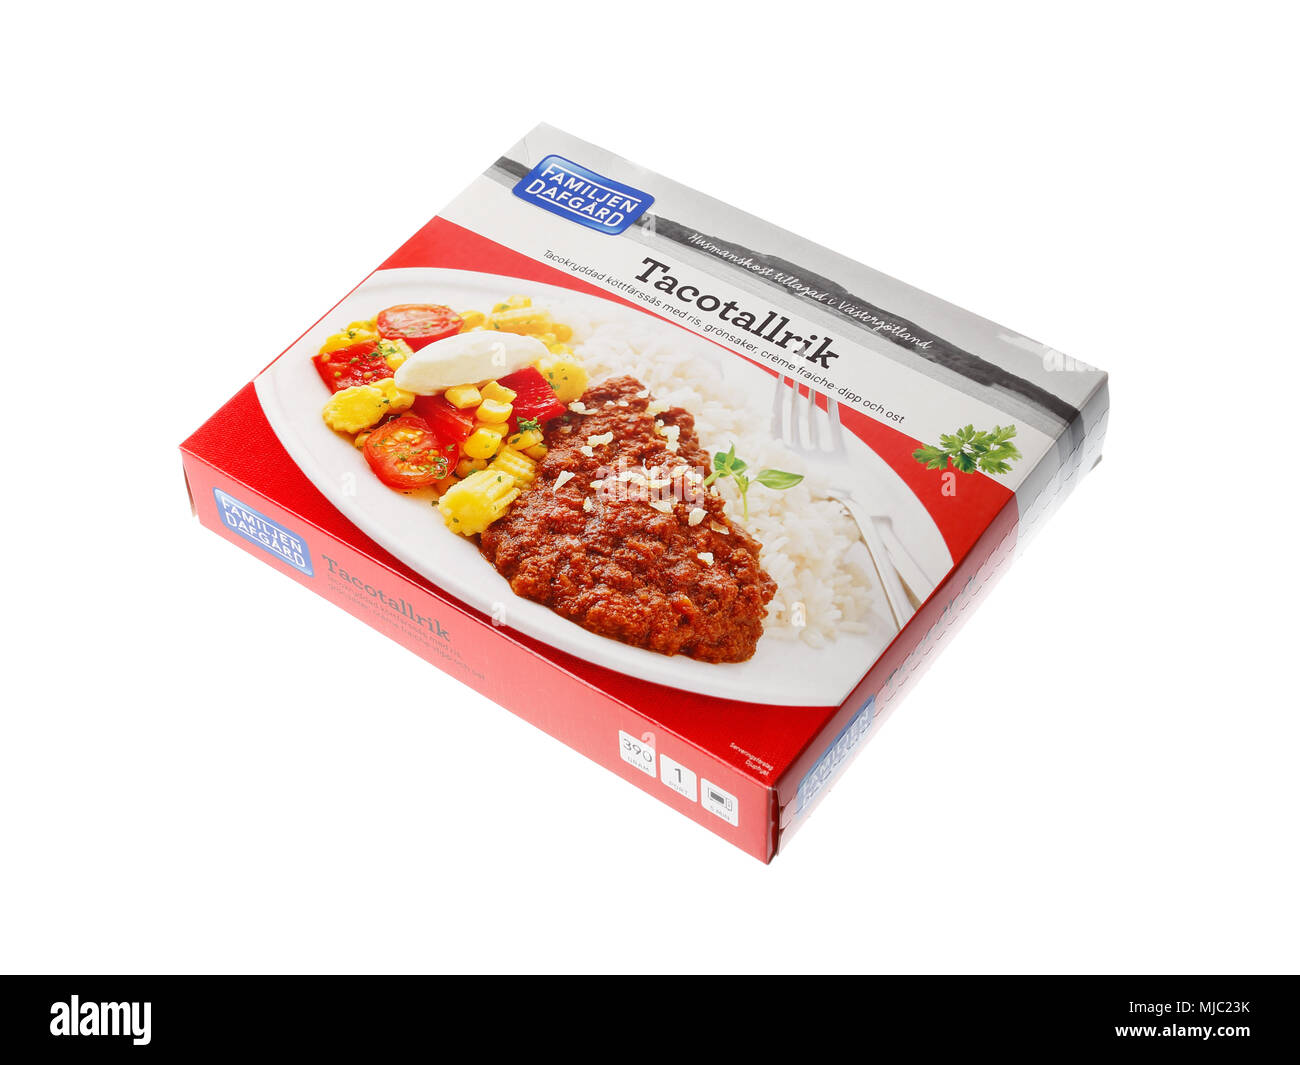 Stockholm, Sweden - May 5, 2016: A package of taco microwave meal frozen in a carton package produced by the brand Dafgards for the Swedish market. - Stock Image